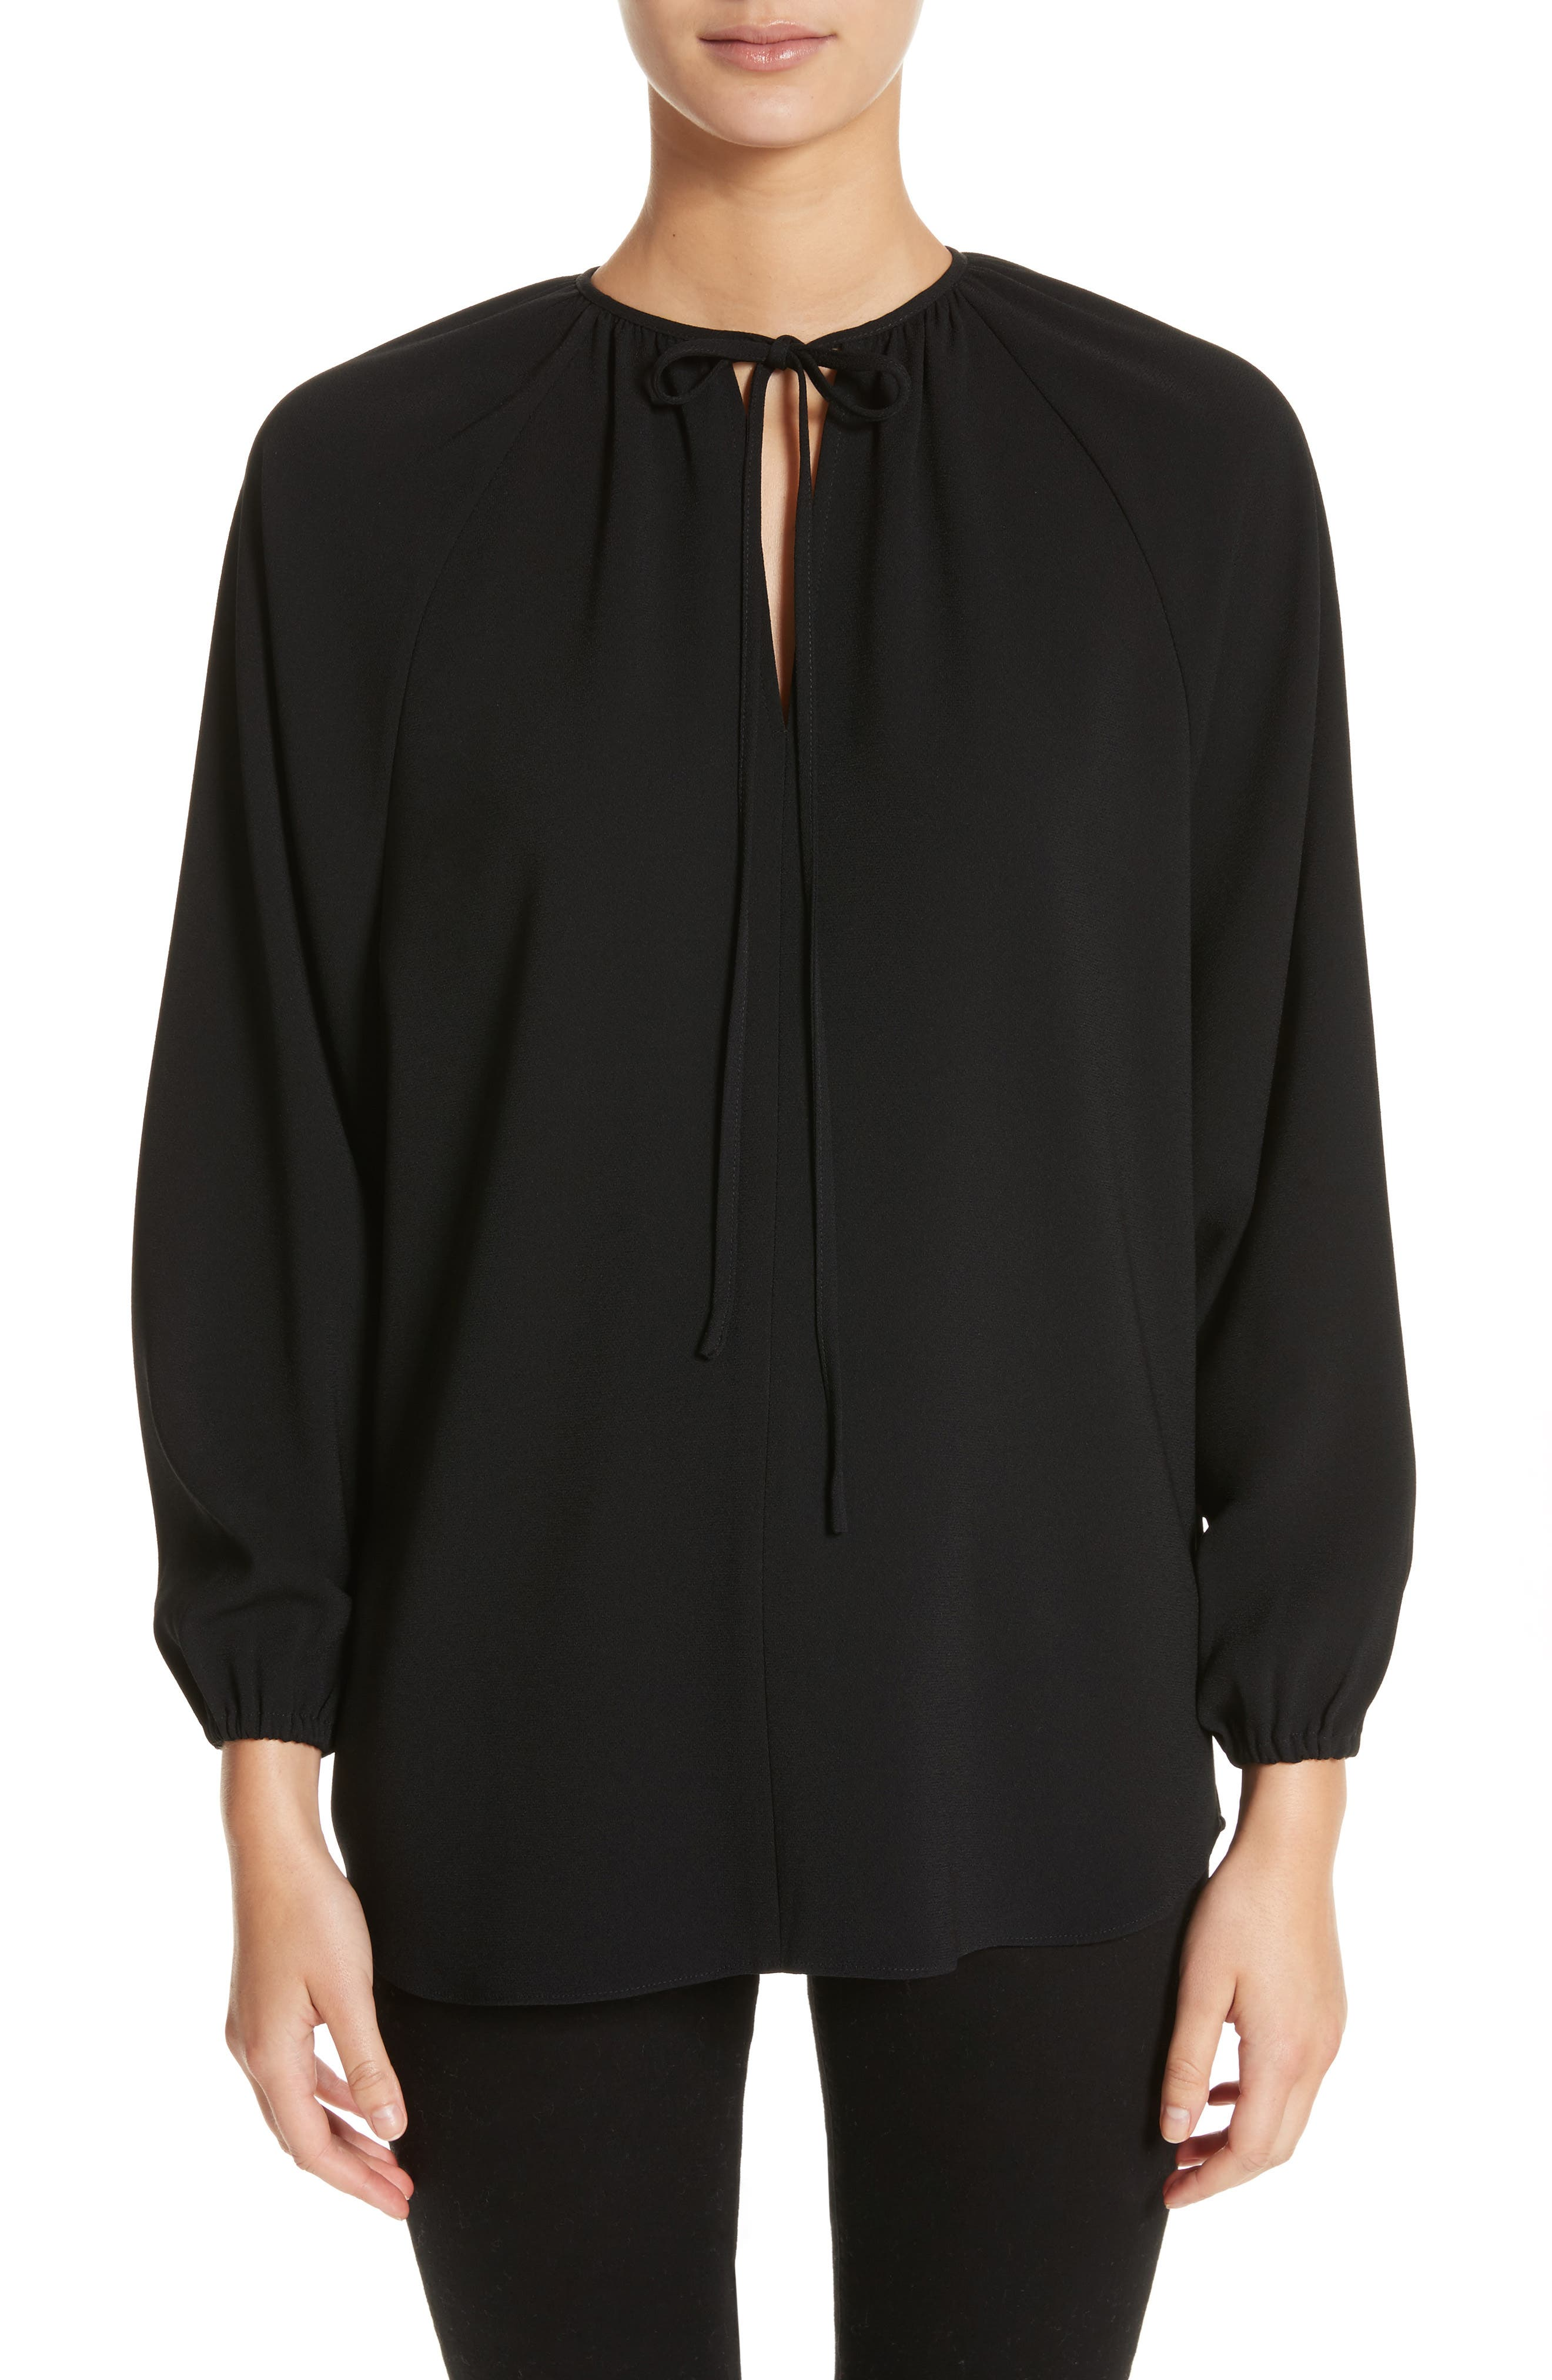 Alternate Image 1 Selected - Co Tie Neck Blouse